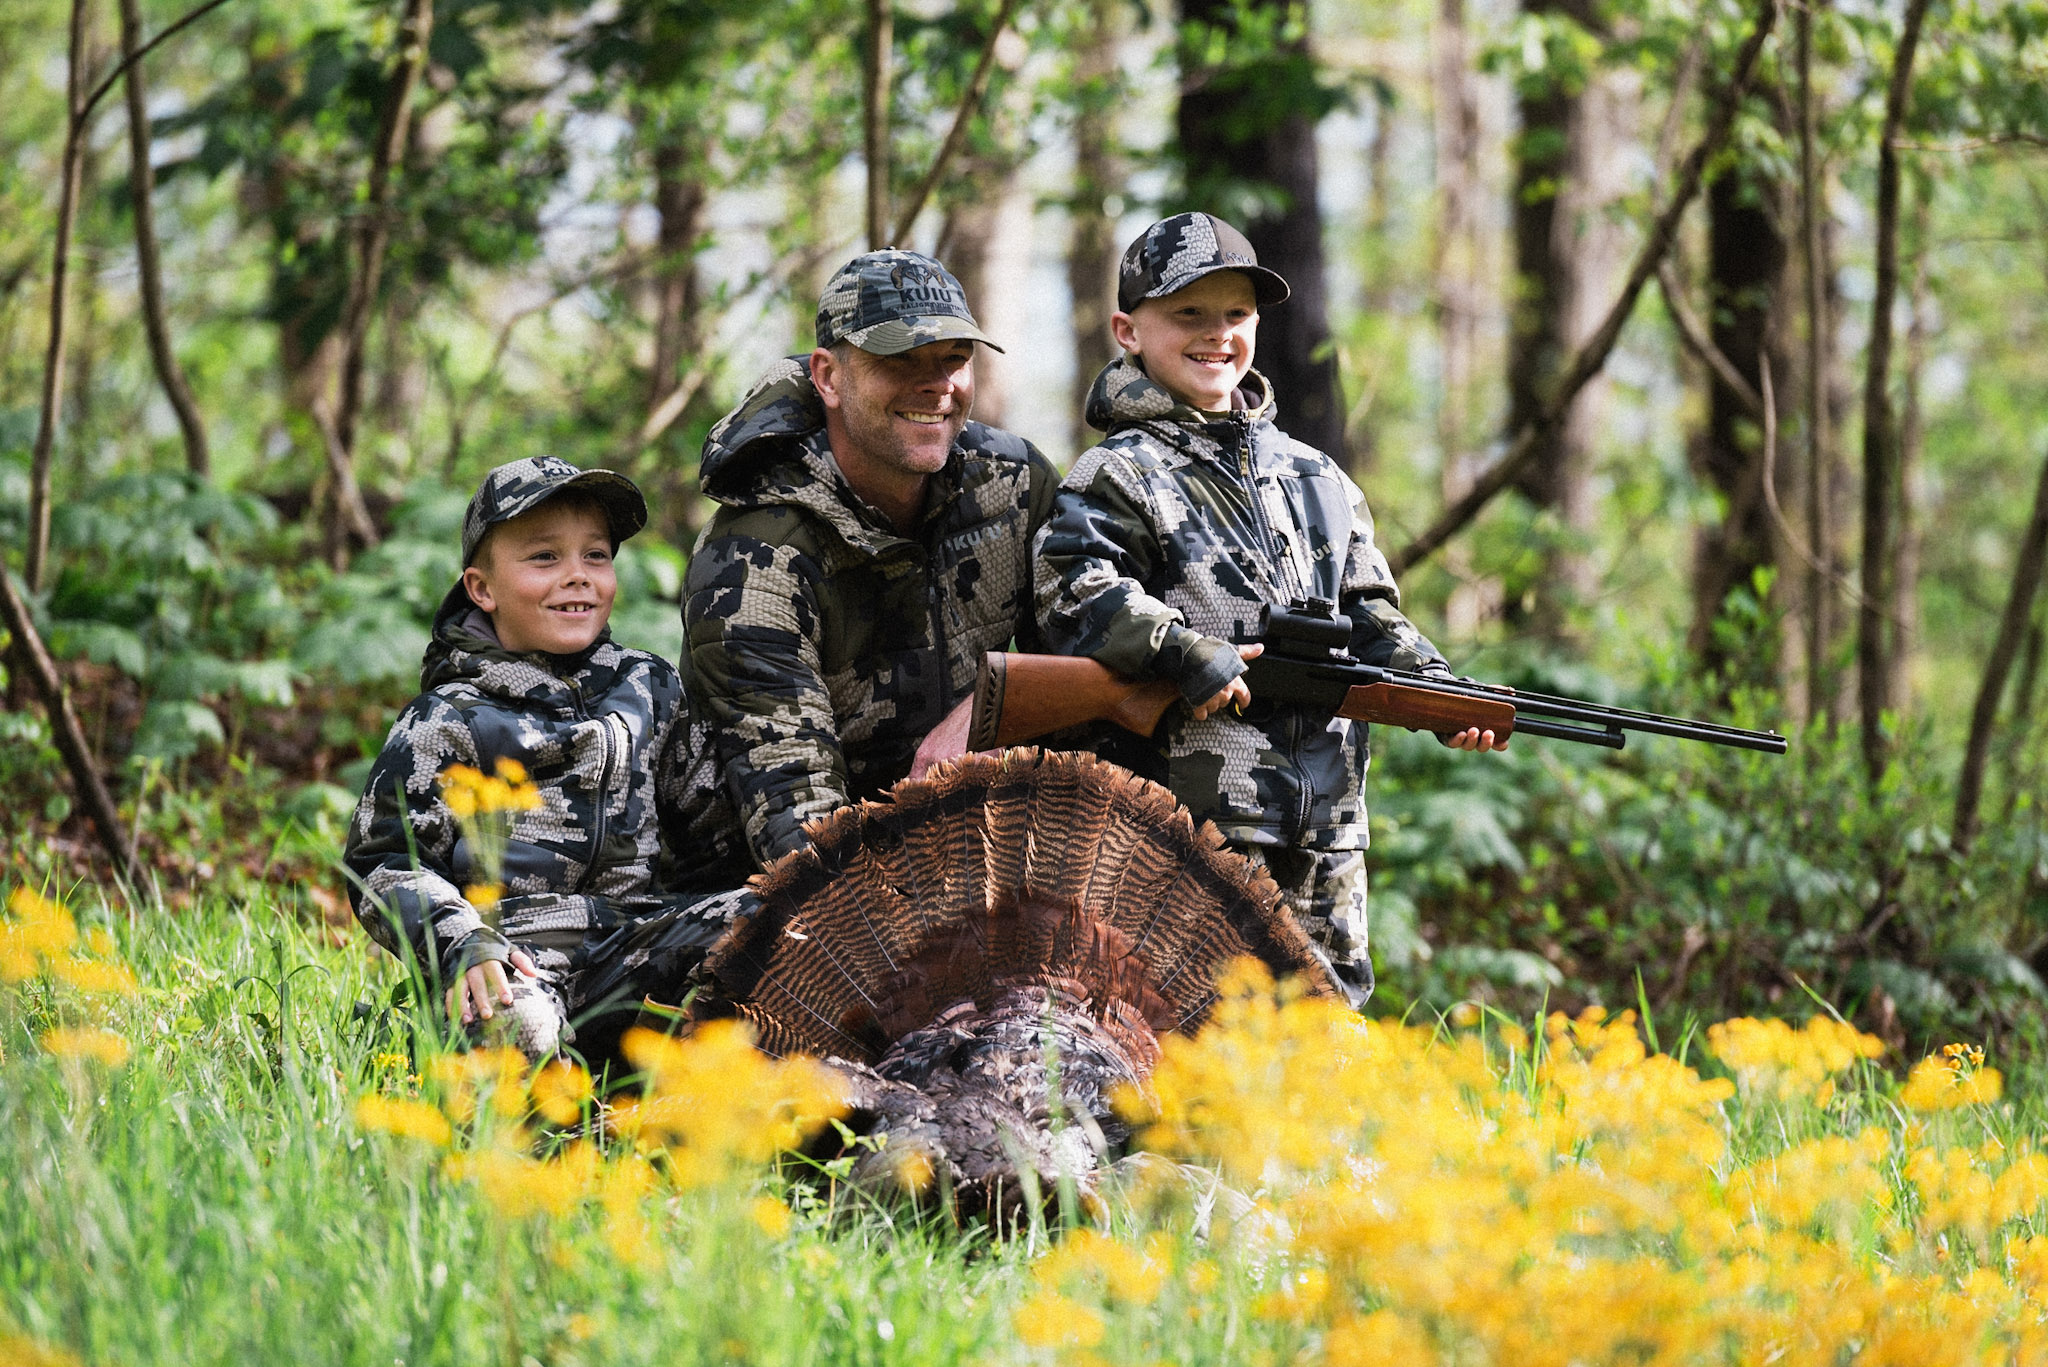 kuiu-youth-turkey-hunt.jpg